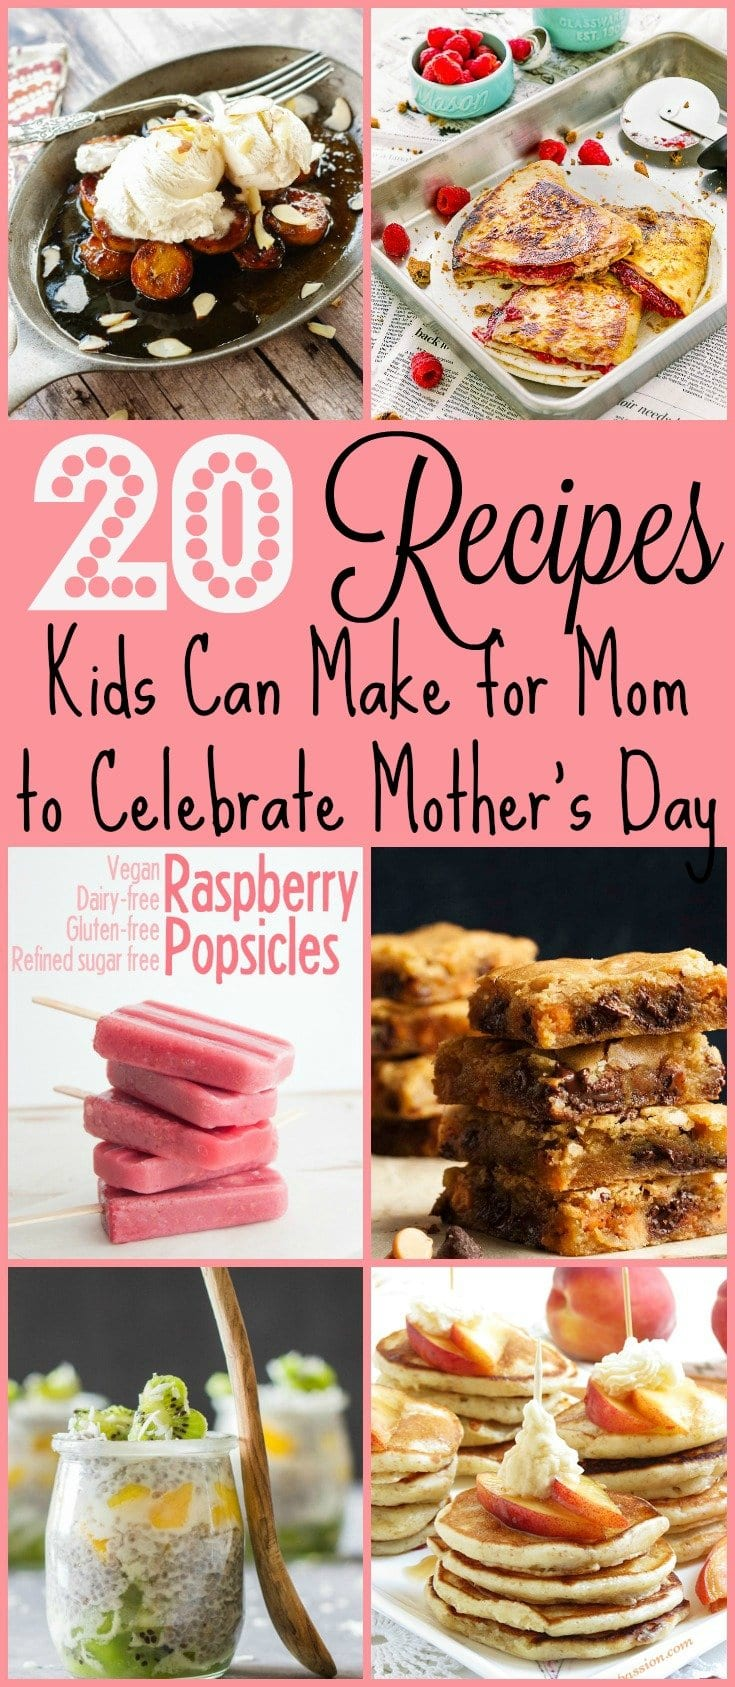 20 Recipes Kids Can Make for Mom to Celebrate Mother